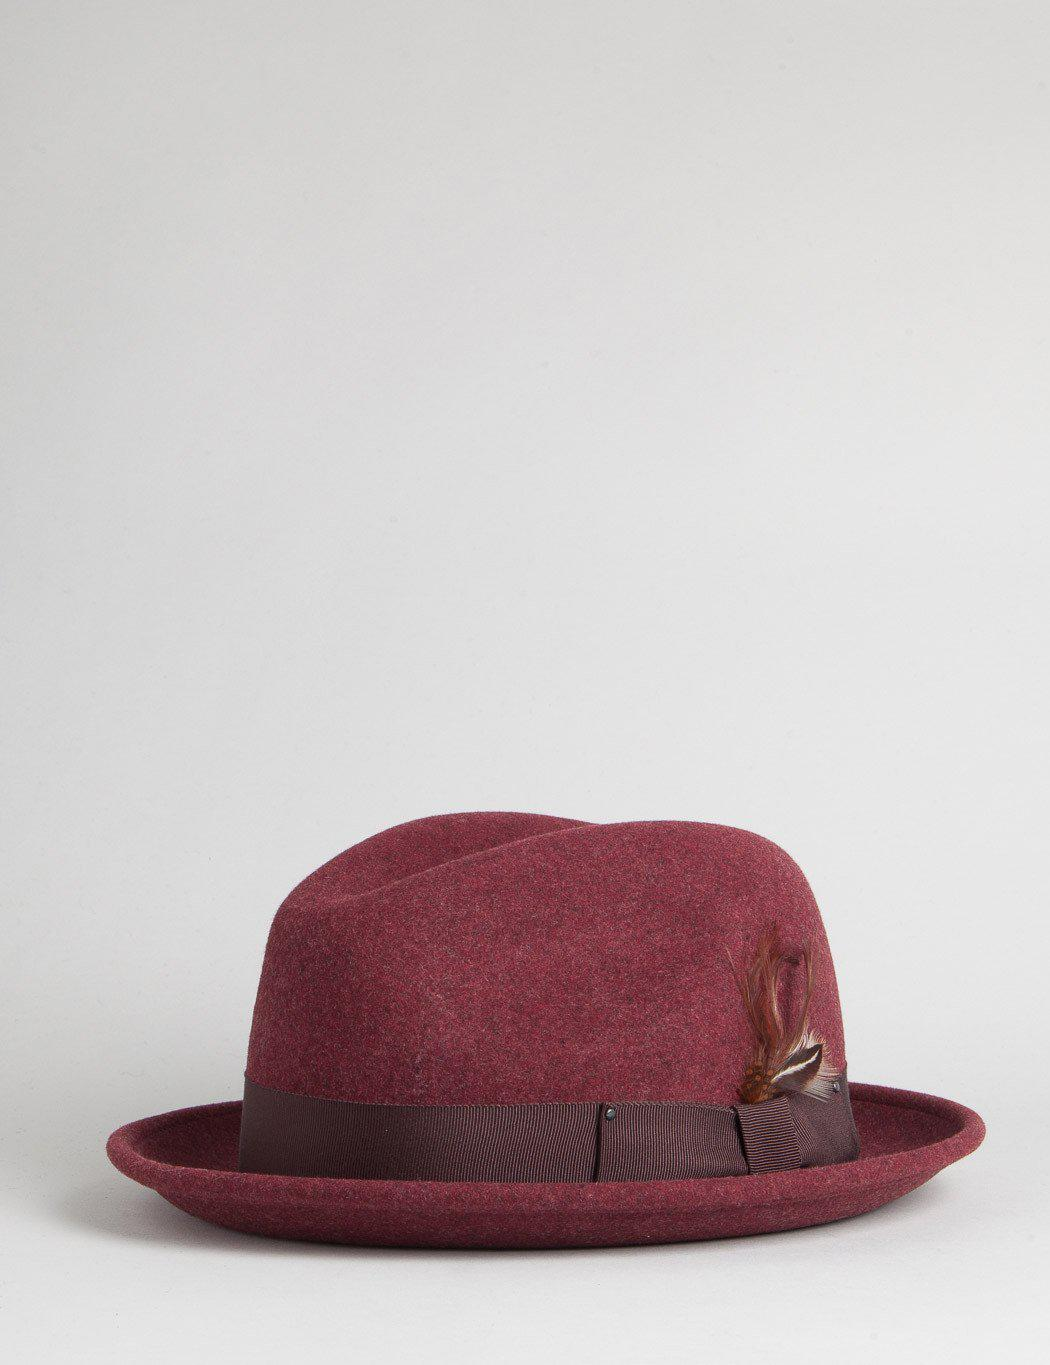 Lyst - Bailey of Hollywood Bailey Tino Trilby Hat for Men 1e92f358b46